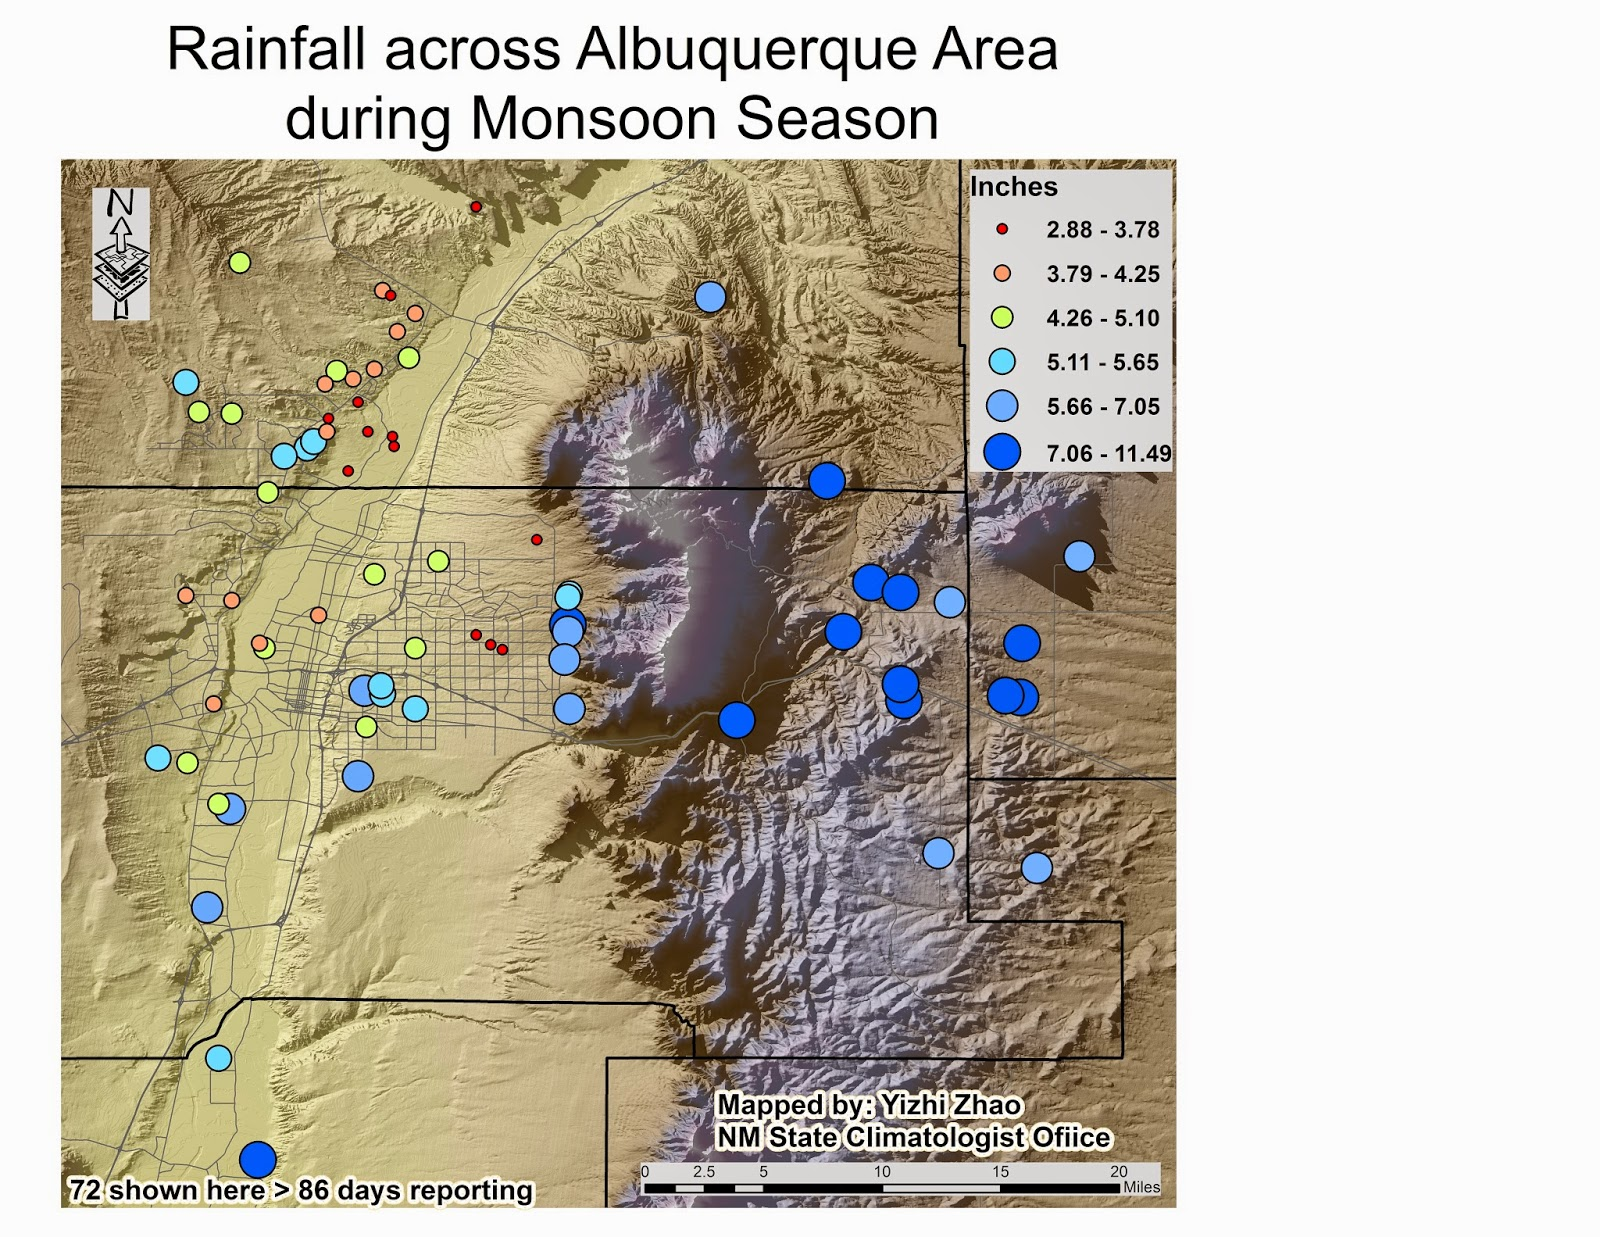 map 2 rainfall across albuquerque area during monsoon season mapped by yizhi zhao from nm state climatologist office